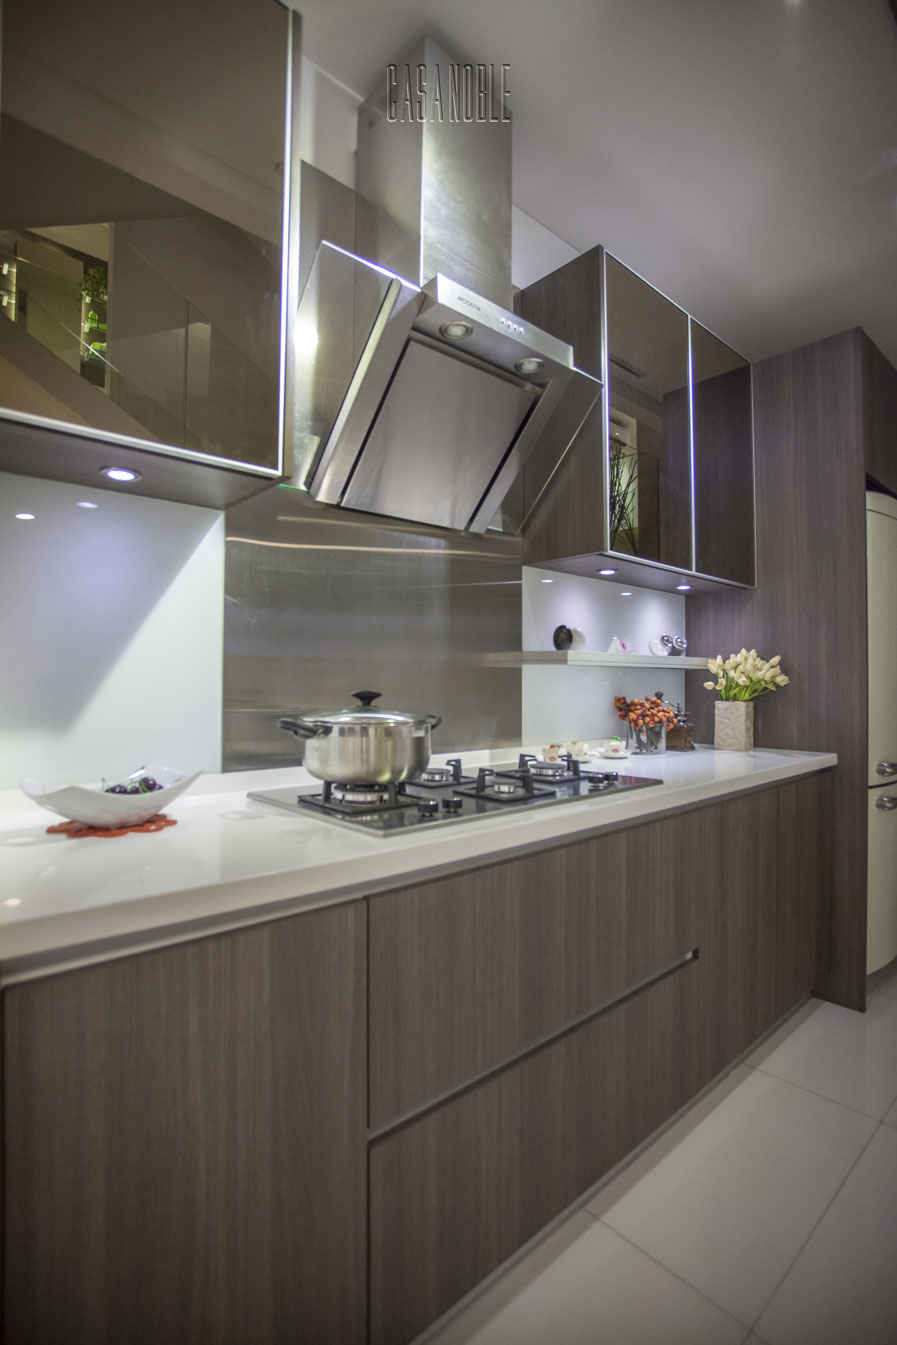 CASANOBLE_DAPUR_KITCHEN_SET_KITCHENSET_CUSTOM_LUXURY_MEWAH_DESAINER_JAKARTA_INDONESIA-(8).jpg